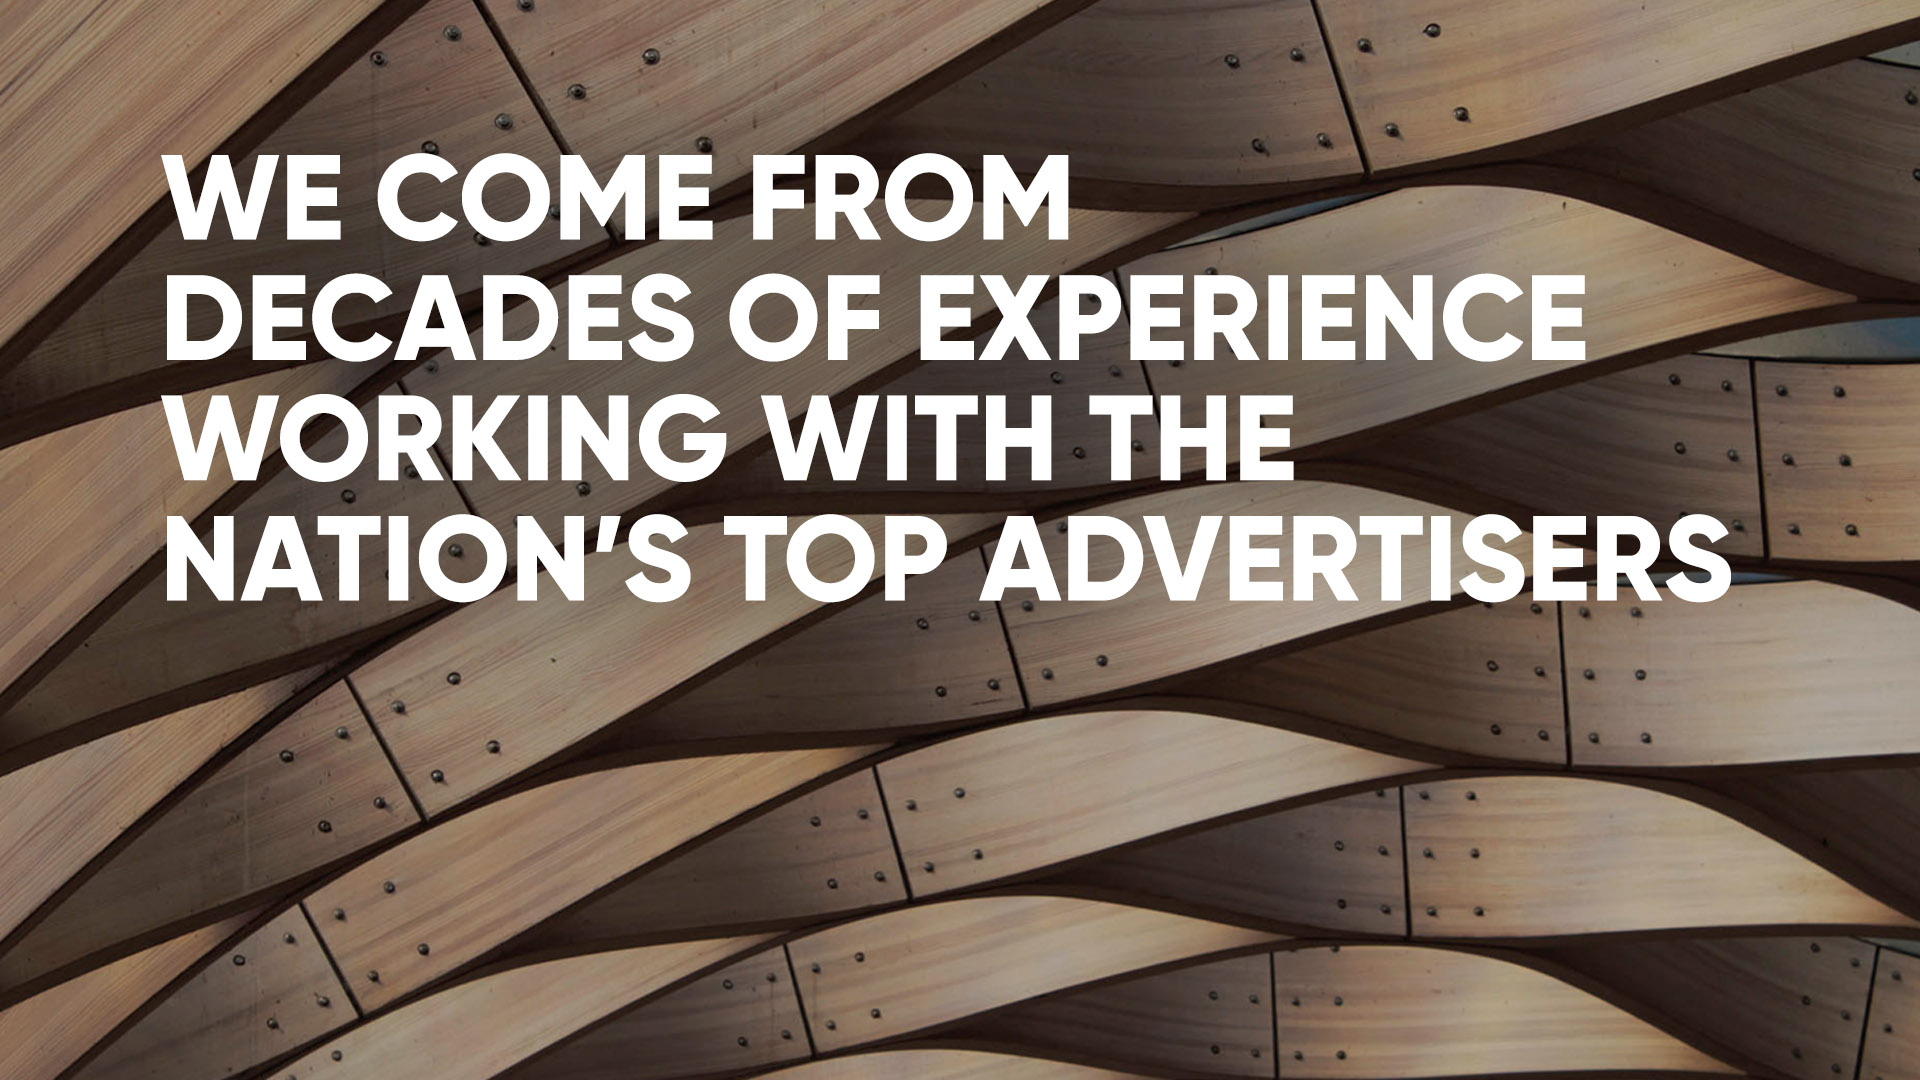 We come from decades of experience working with the nation's top advertisers